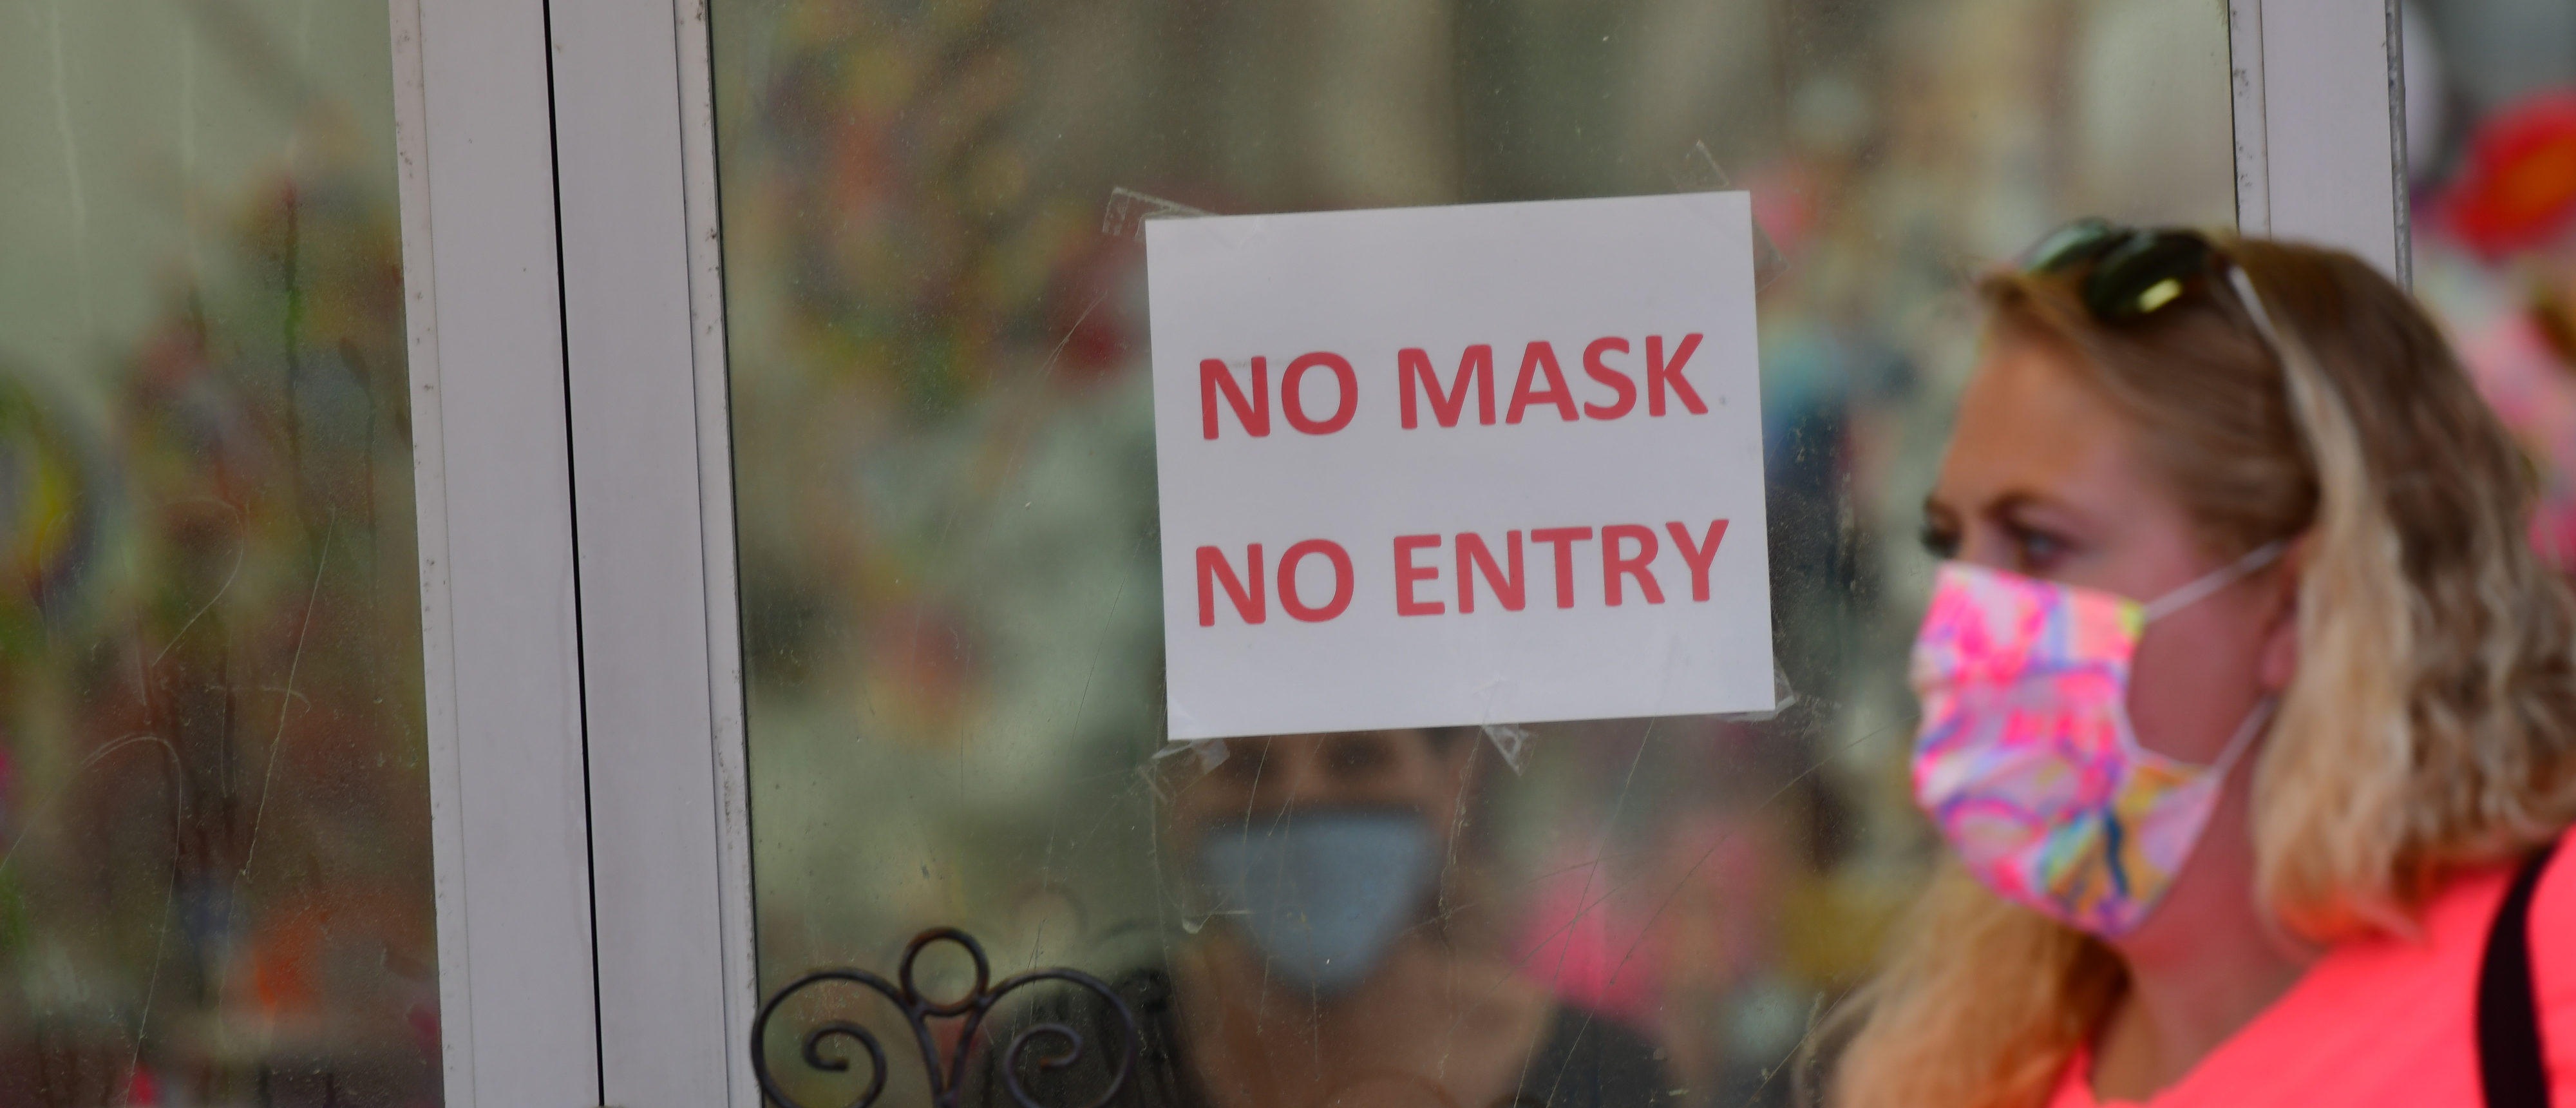 WILDWOOD, NJ - JULY 03: A woman wearing a face mask walks past a Boardwalk store with signs warning patrons of mask requirements on July 3, 2020 in Wildwood, New Jersey. New Jersey beaches have reopened for the July 4th holiday as some coronavirus restrictions have been lifted, along with casinos, amusement rides and water parks at limited capacity. (Photo by Mark Makela/Getty Images)